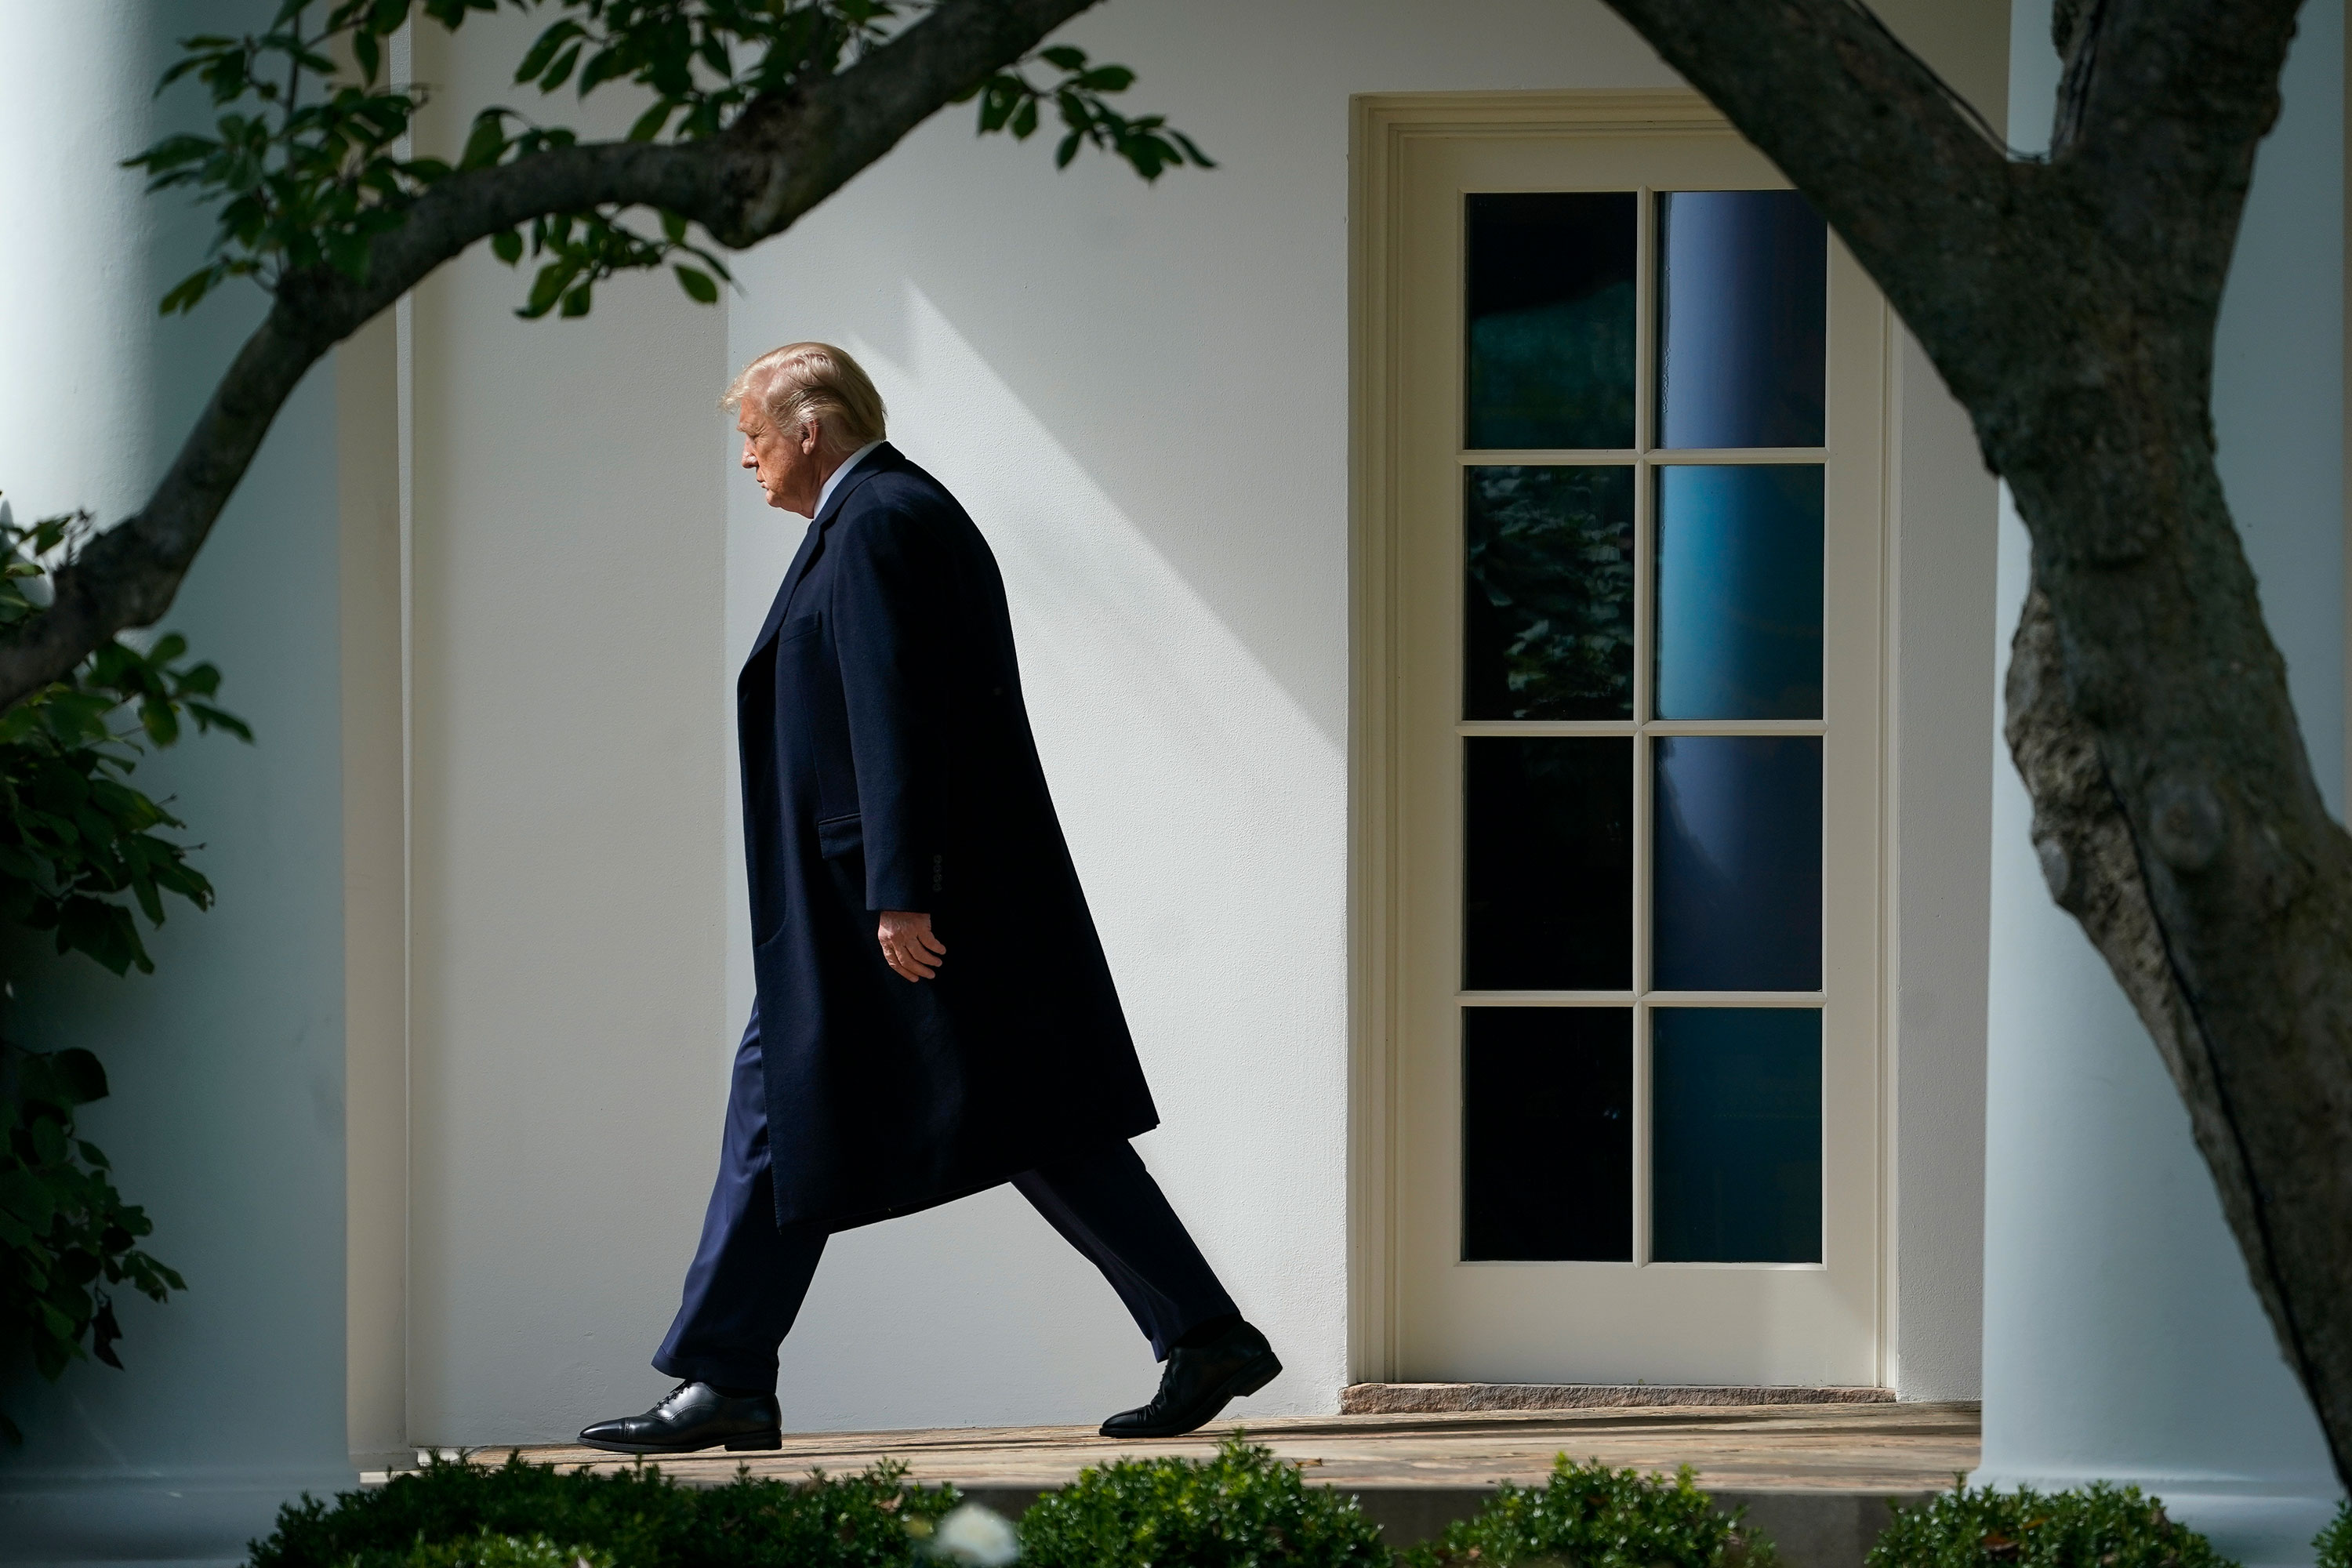 President Donald Trump exits the Oval Office and walks to Marine One on the South Lawn of the White House on October 1. President Trump was traveling to Bedminster, New Jersey, for a roundtable event with supporters and a fundraiser.